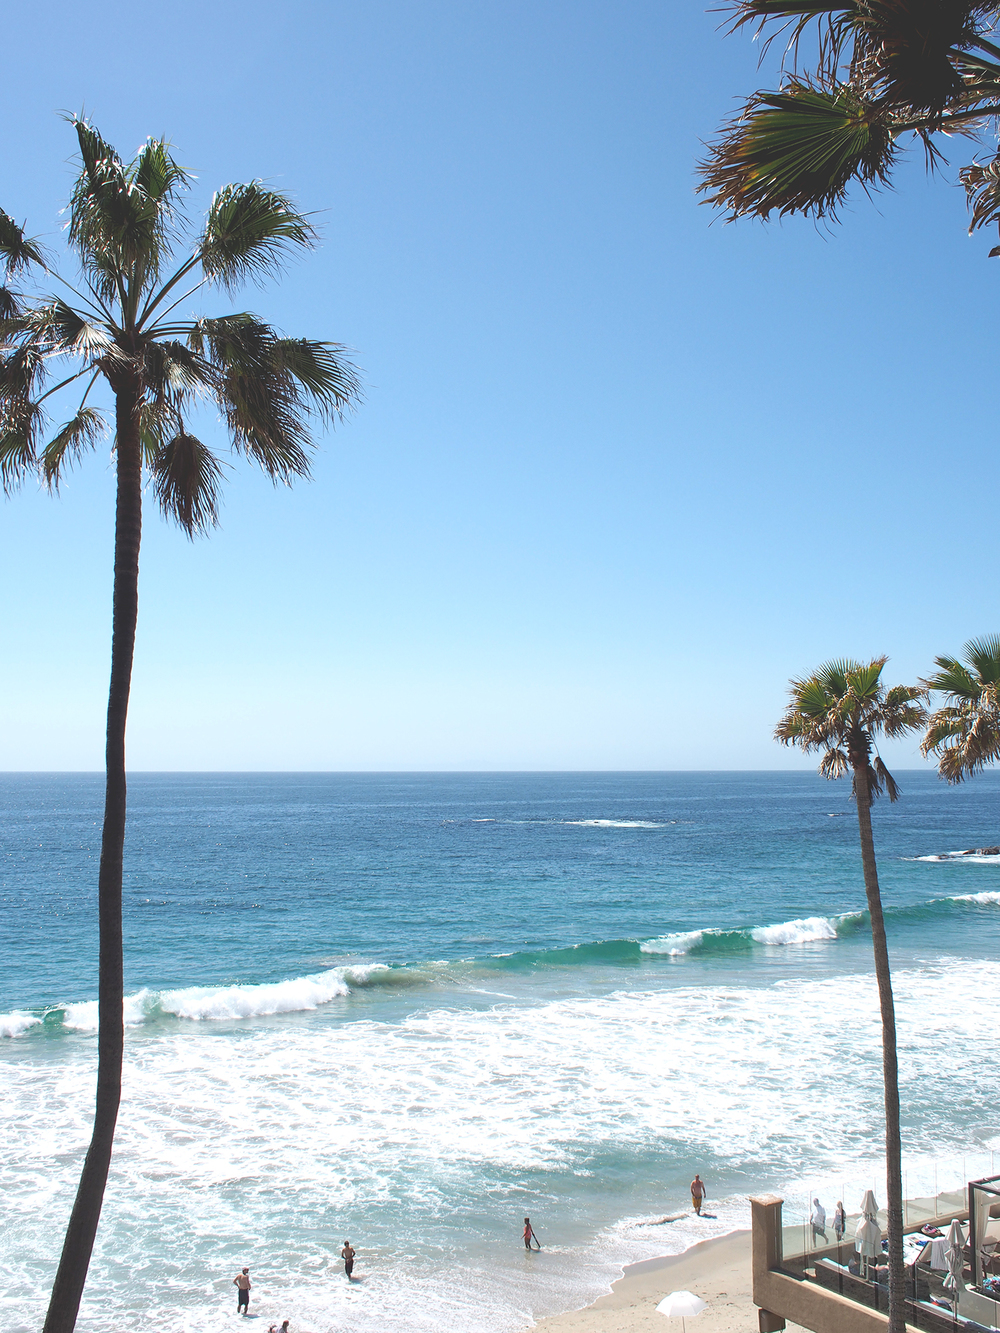 Staycation at the Surf and Sand in Laguna Beach | A Fabulous Fete